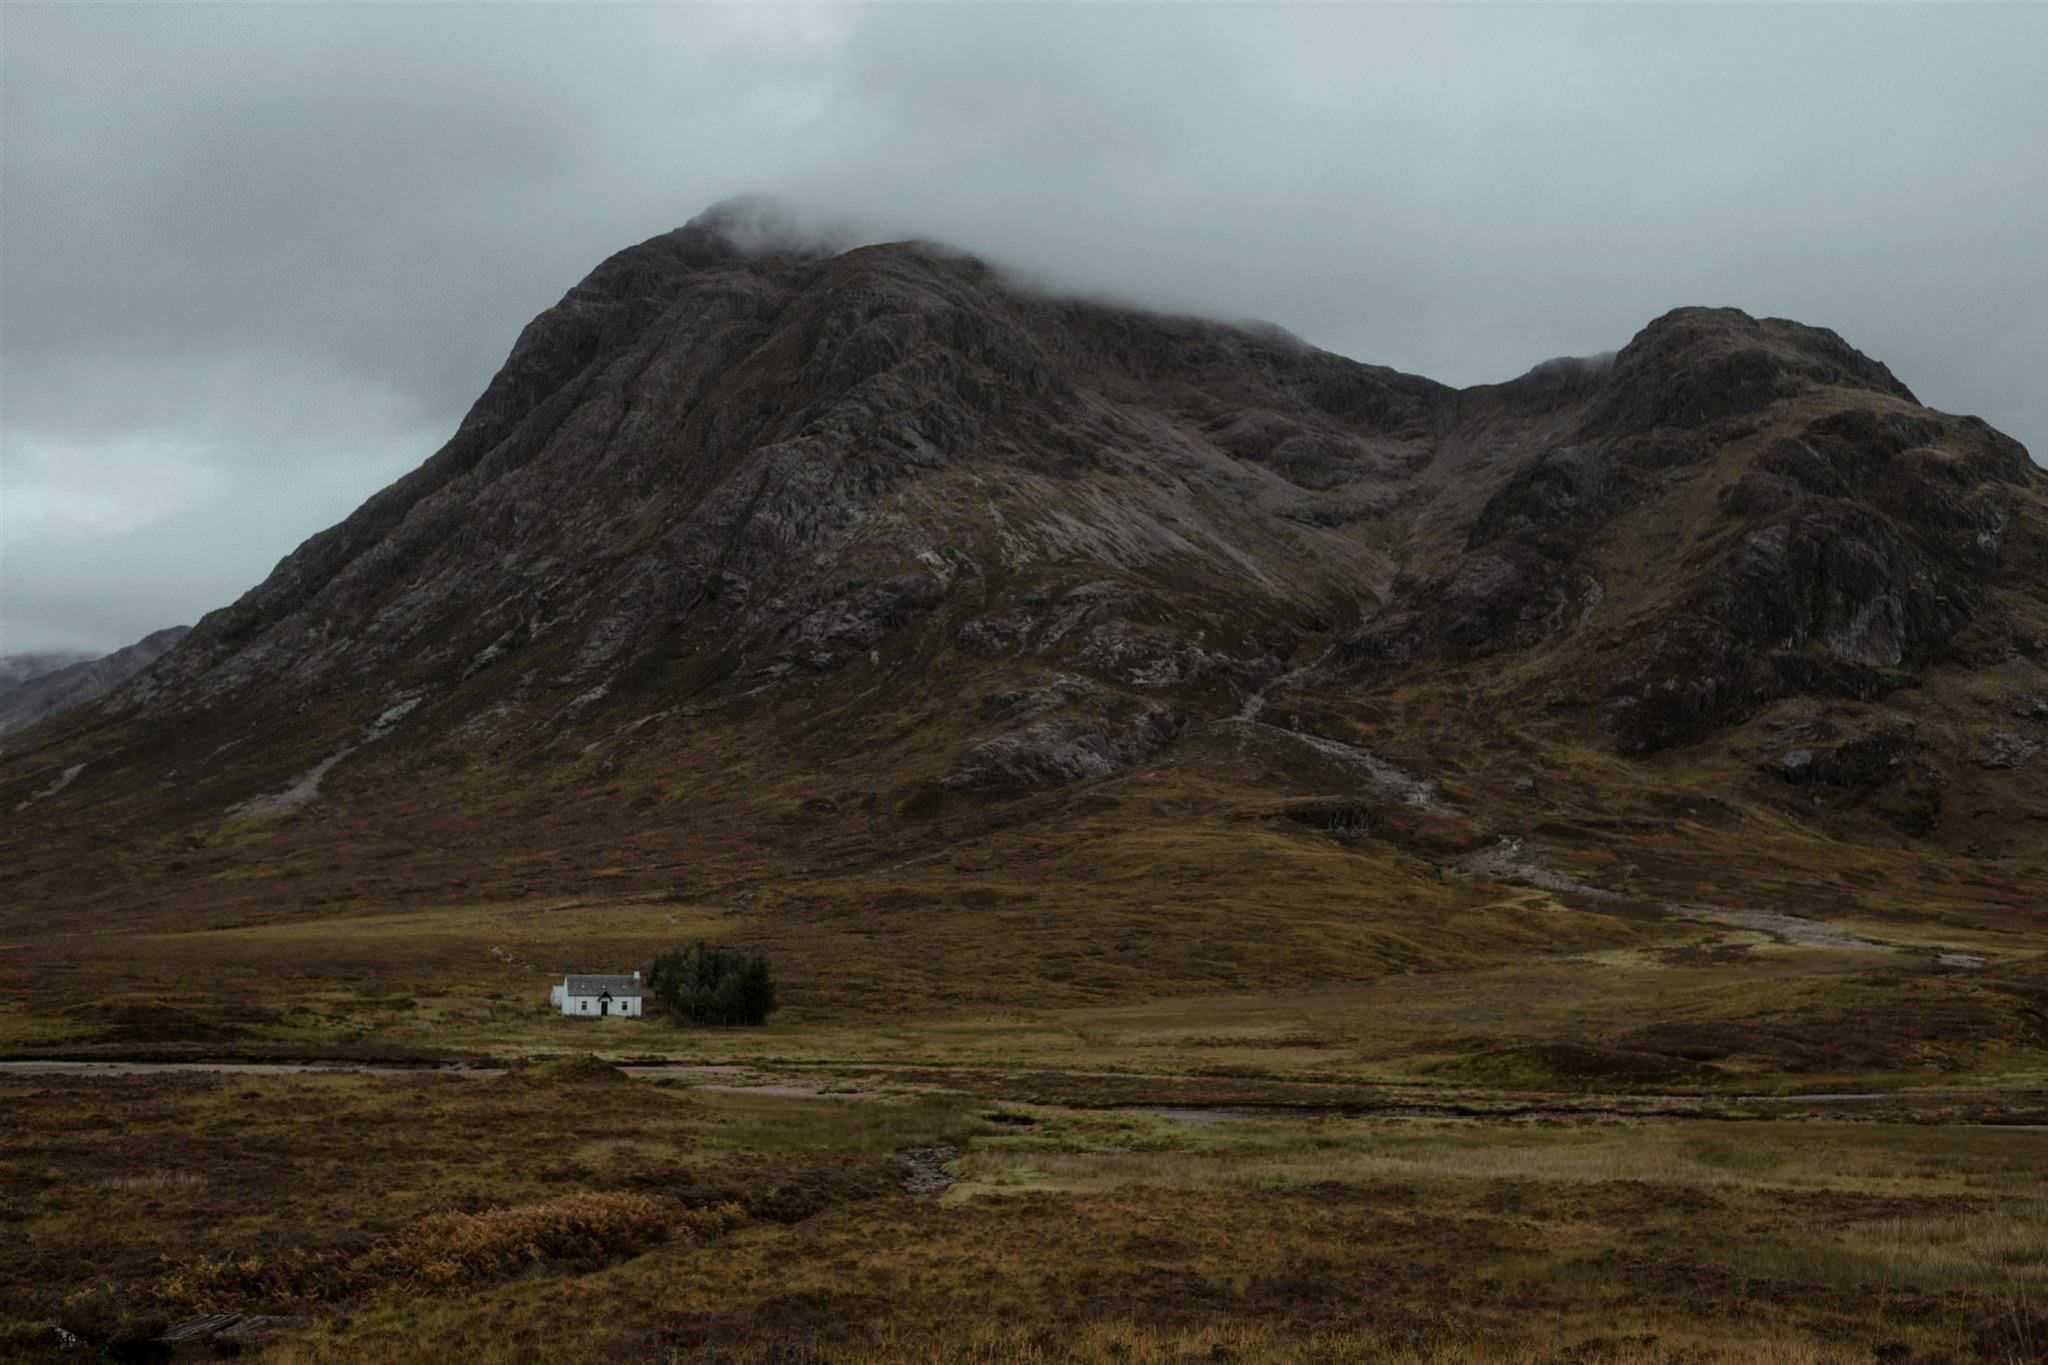 Cottage with mountains in the background in Glencoe, Scotland